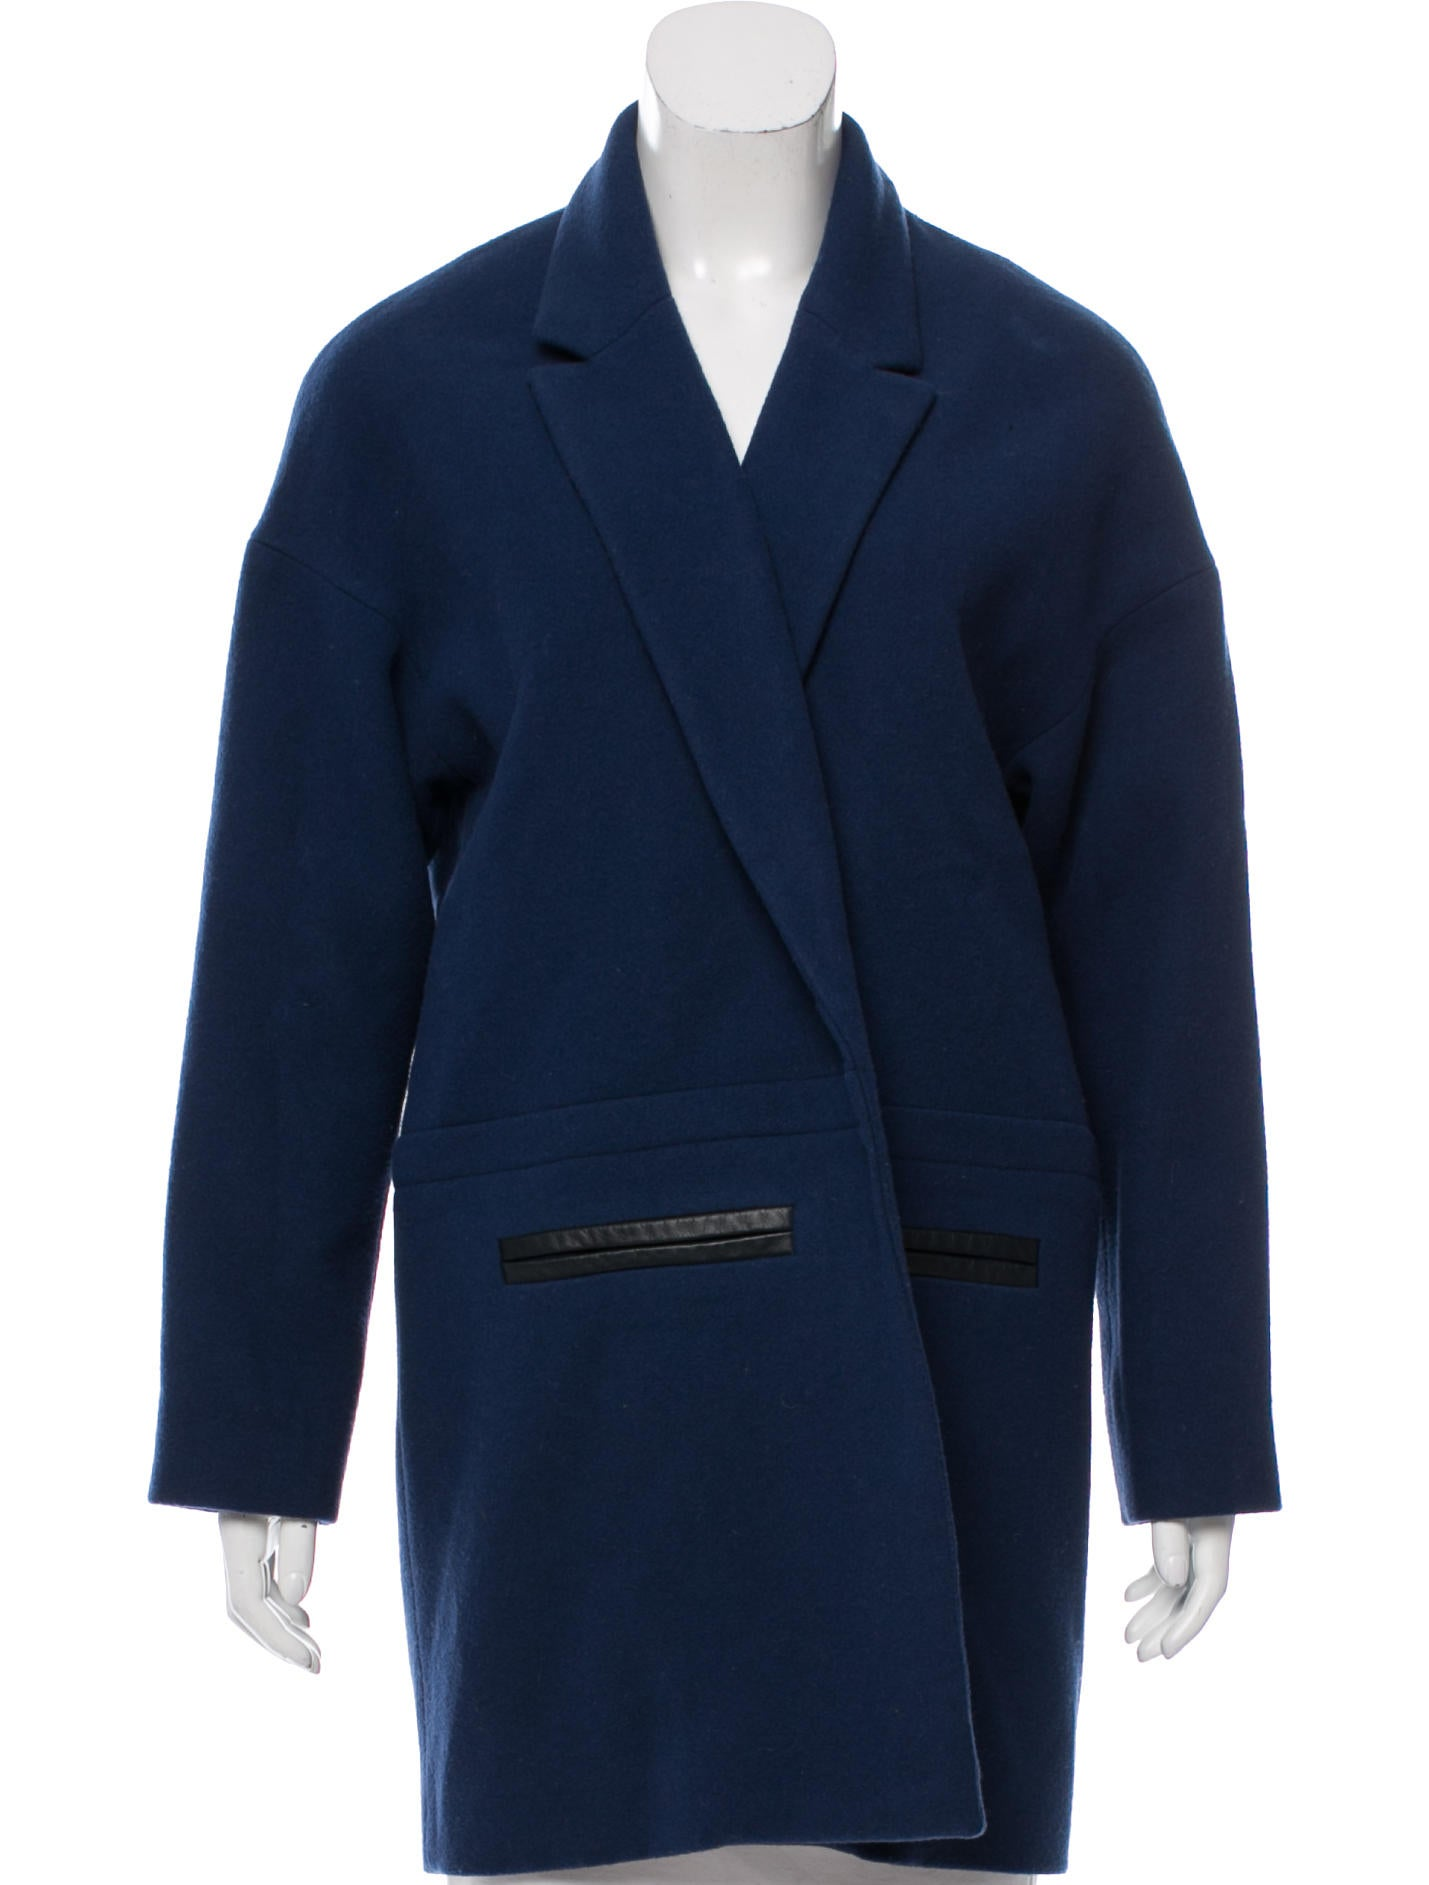 Wool Coats. Long, short and all lengths in between, Macy's has wool coats for everyone. From fashionable women's trench coats to wool jackets for youngsters, looking great in cold weather has never been easier.